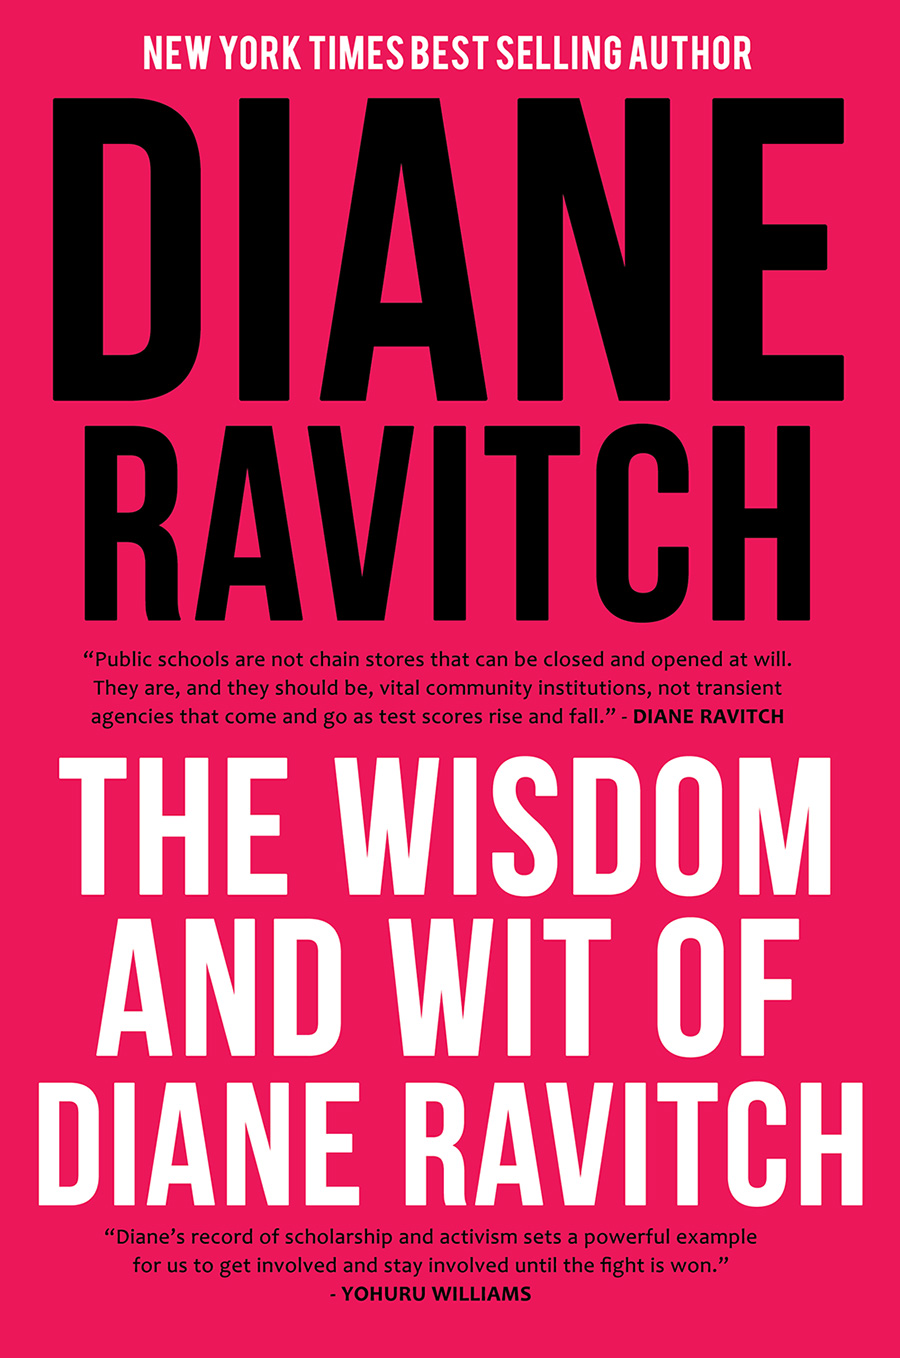 the-wisdom-wit-of-diane-ravitch-front-garn-press-2019.jpg